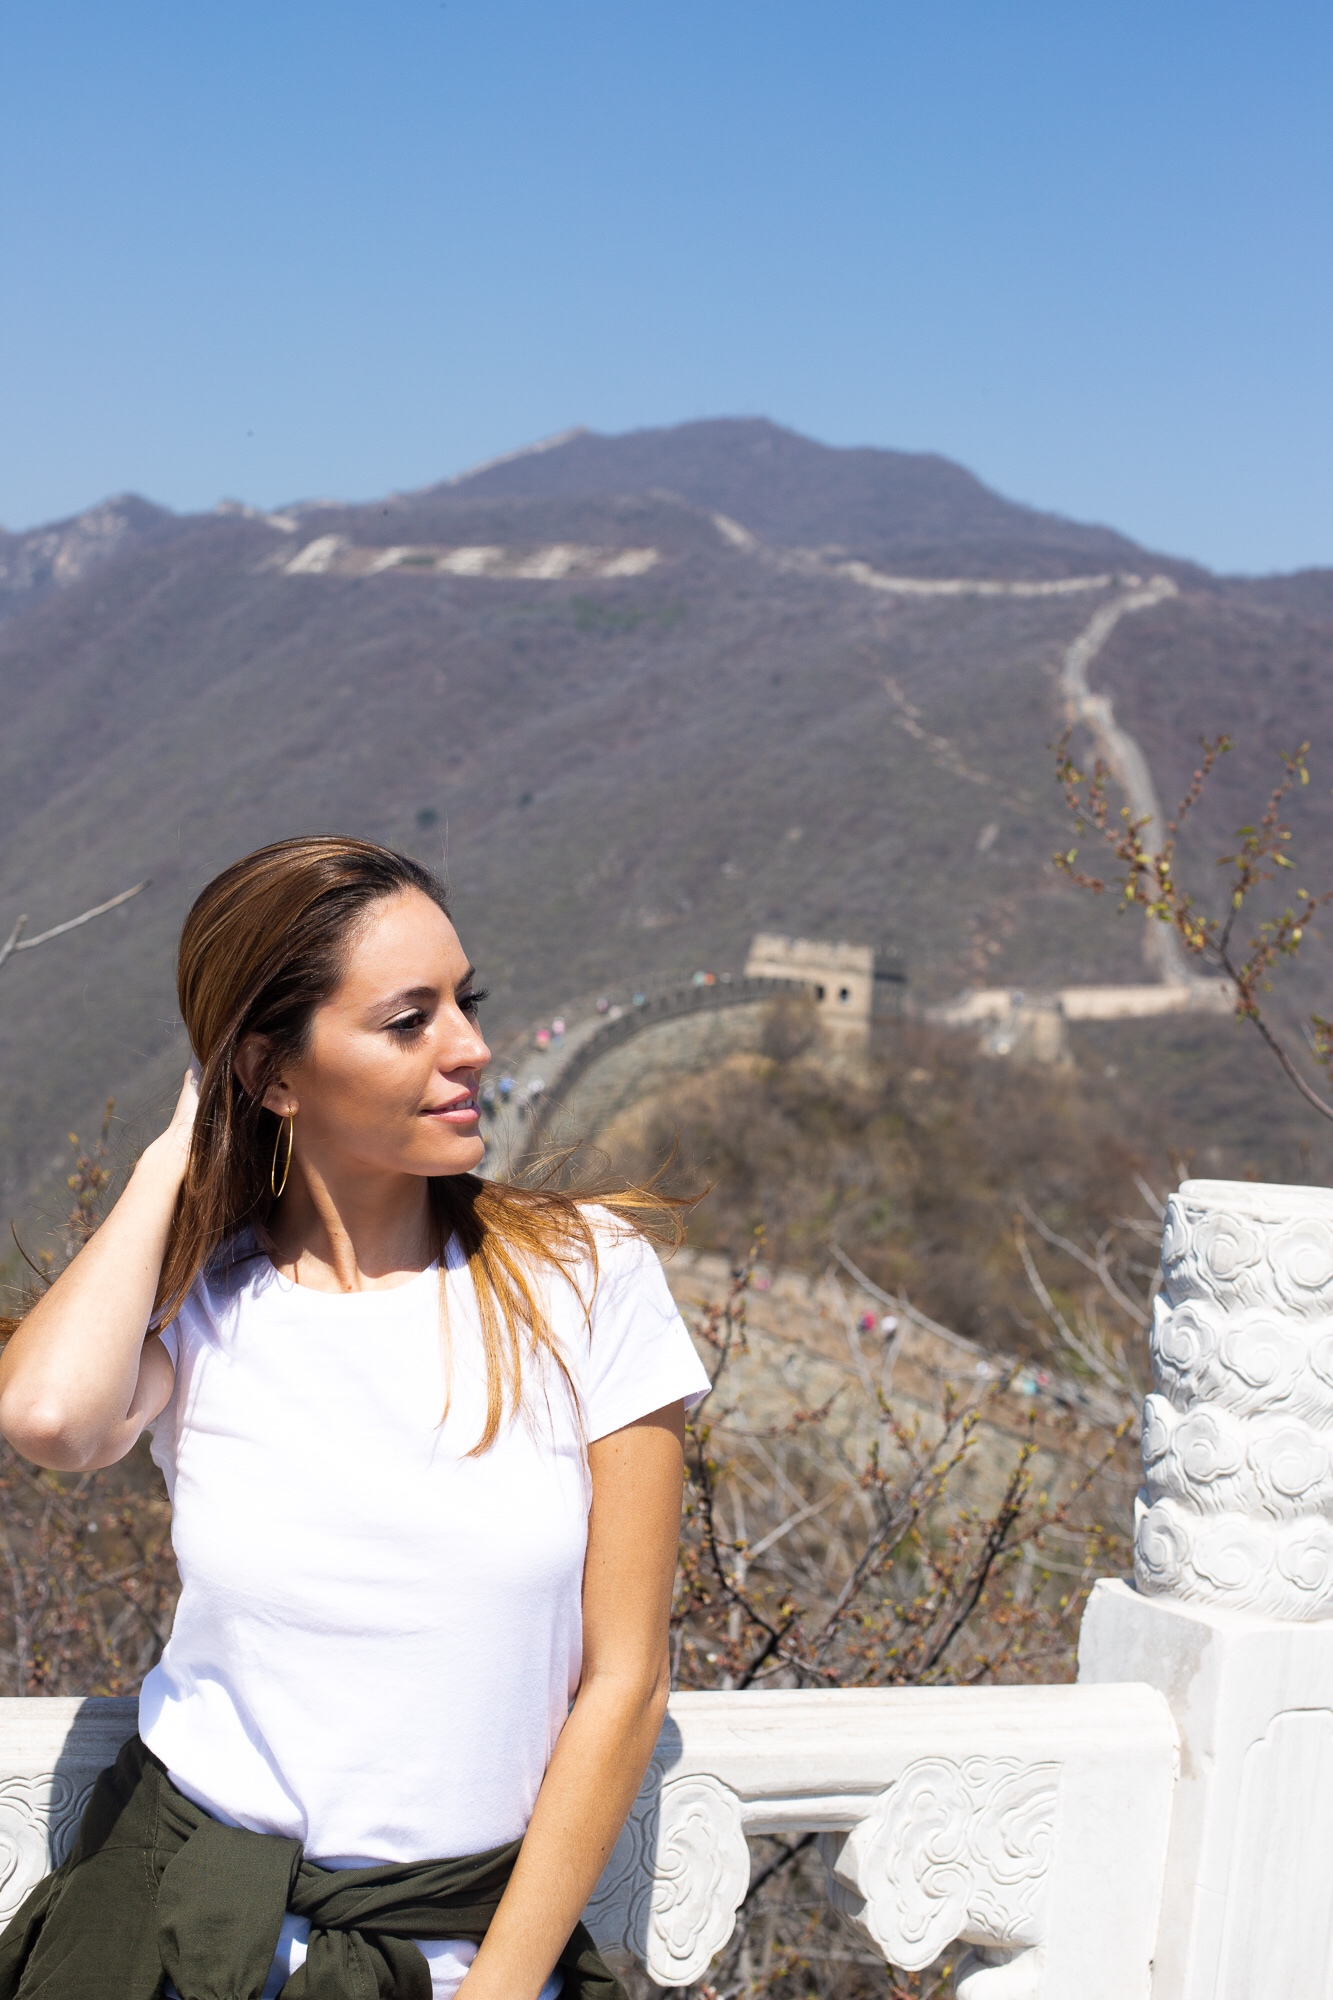 The Great Wall, Climbing the Great Wall of China, Great Wall Beijing, what to do in Beijing, viator, best way to see the great wall, what to do in china, wonders of the world, travel bucket list